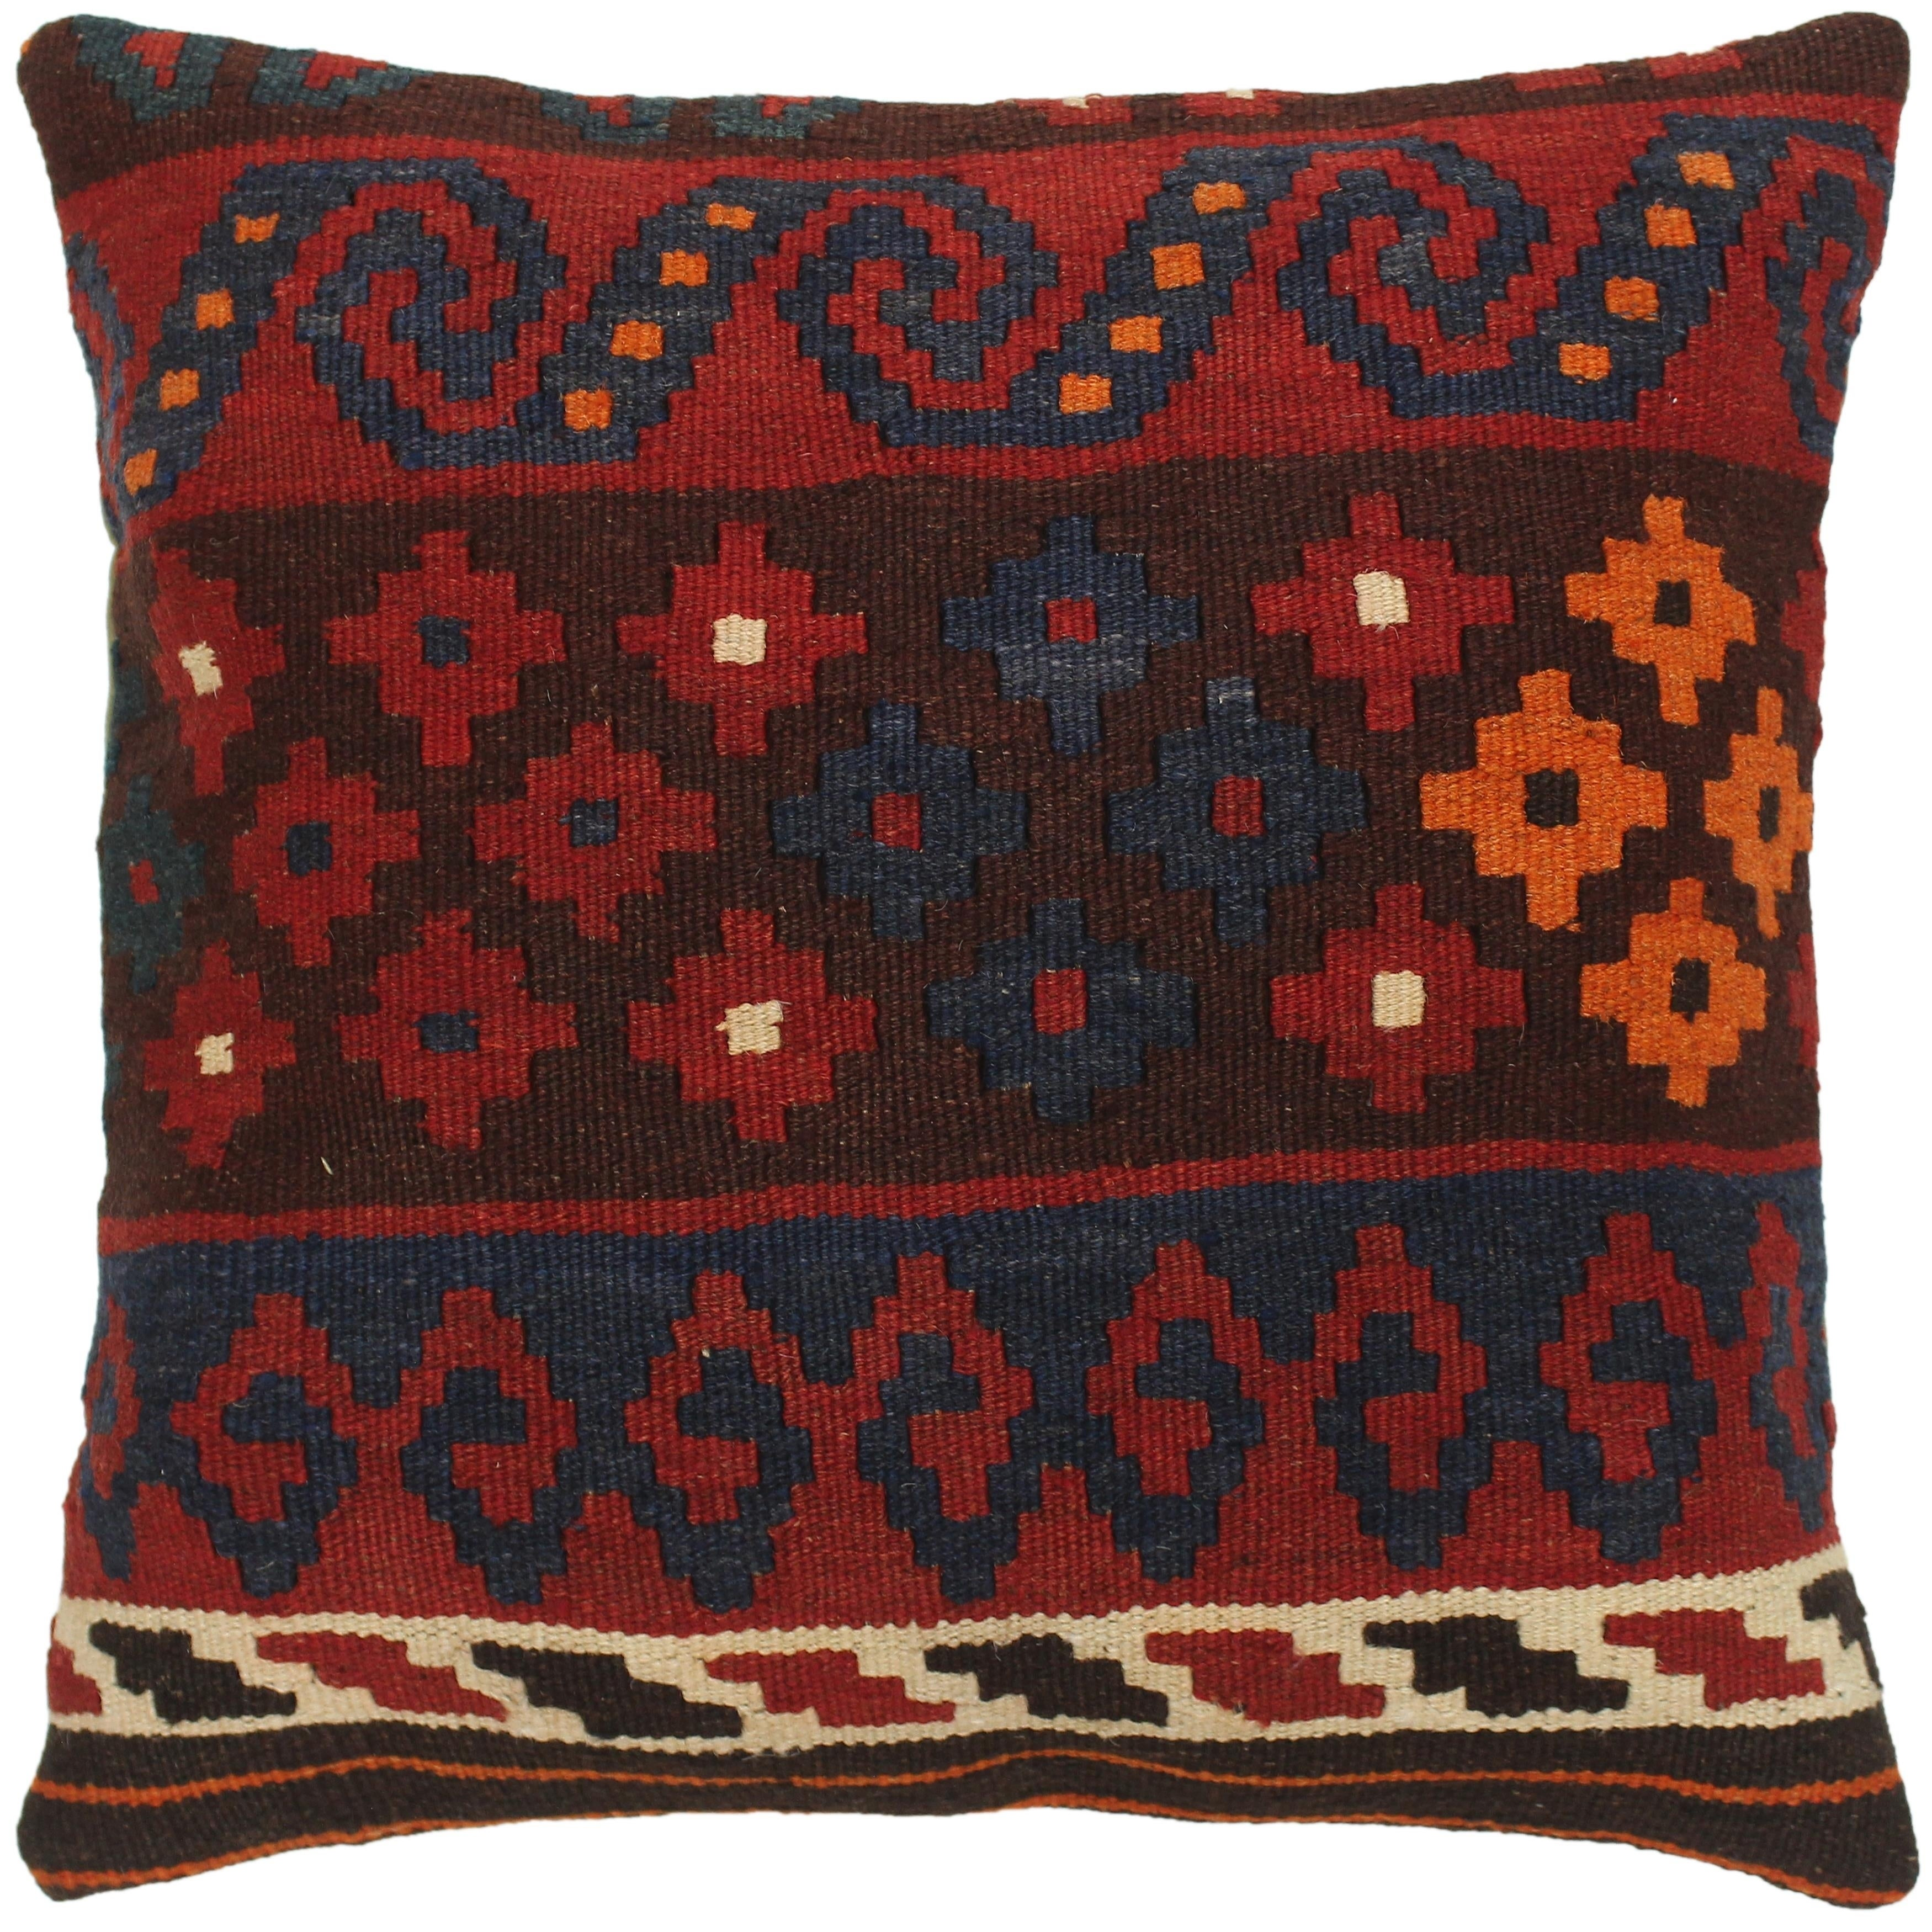 Richard Red Blue Hand Woven Kilim Throw Pillow 1 5 X 1 6 Overstock 29811615